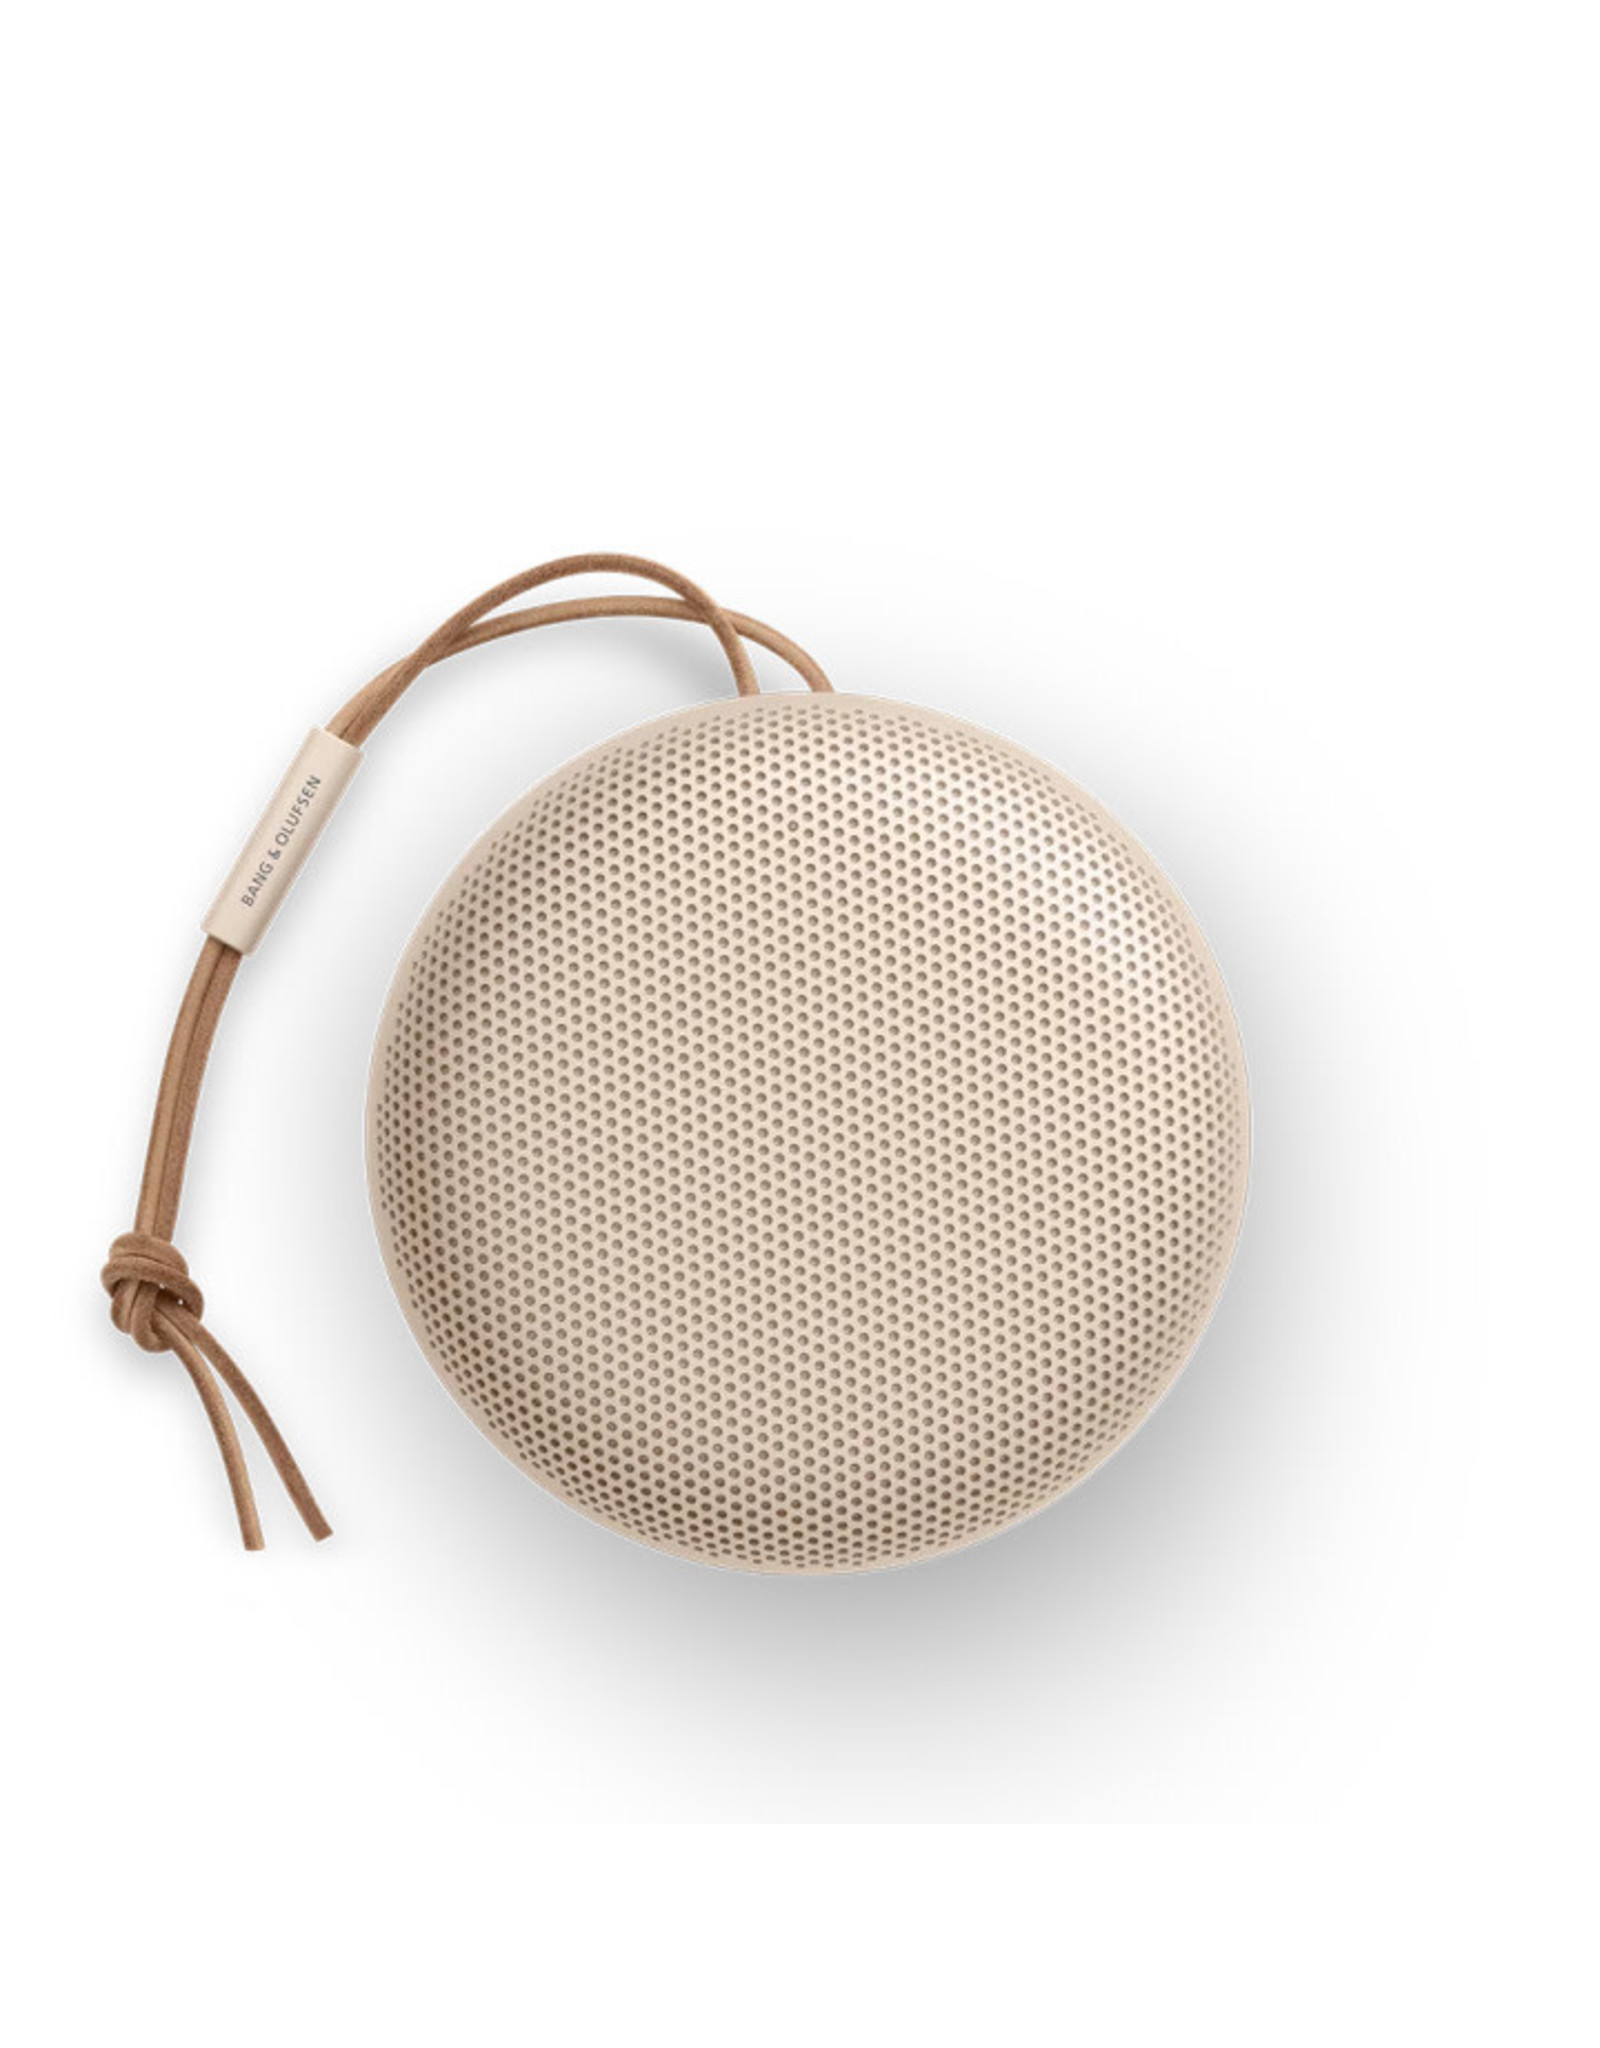 B&O Play BEOPLAY A1 2nd Gen Gold Tone